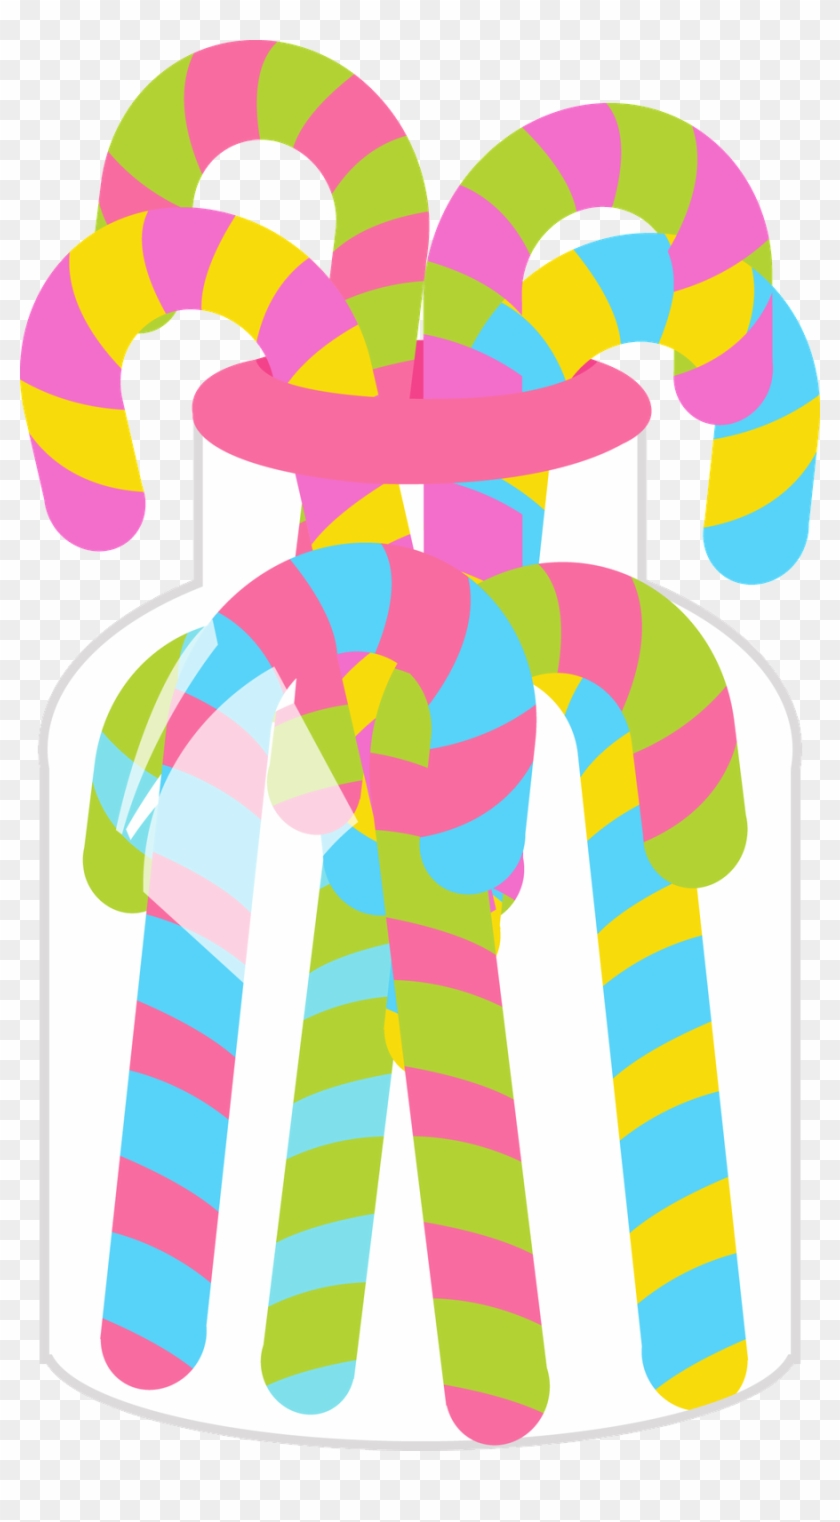 Say Hello - Candyland Party Clip Art #171127